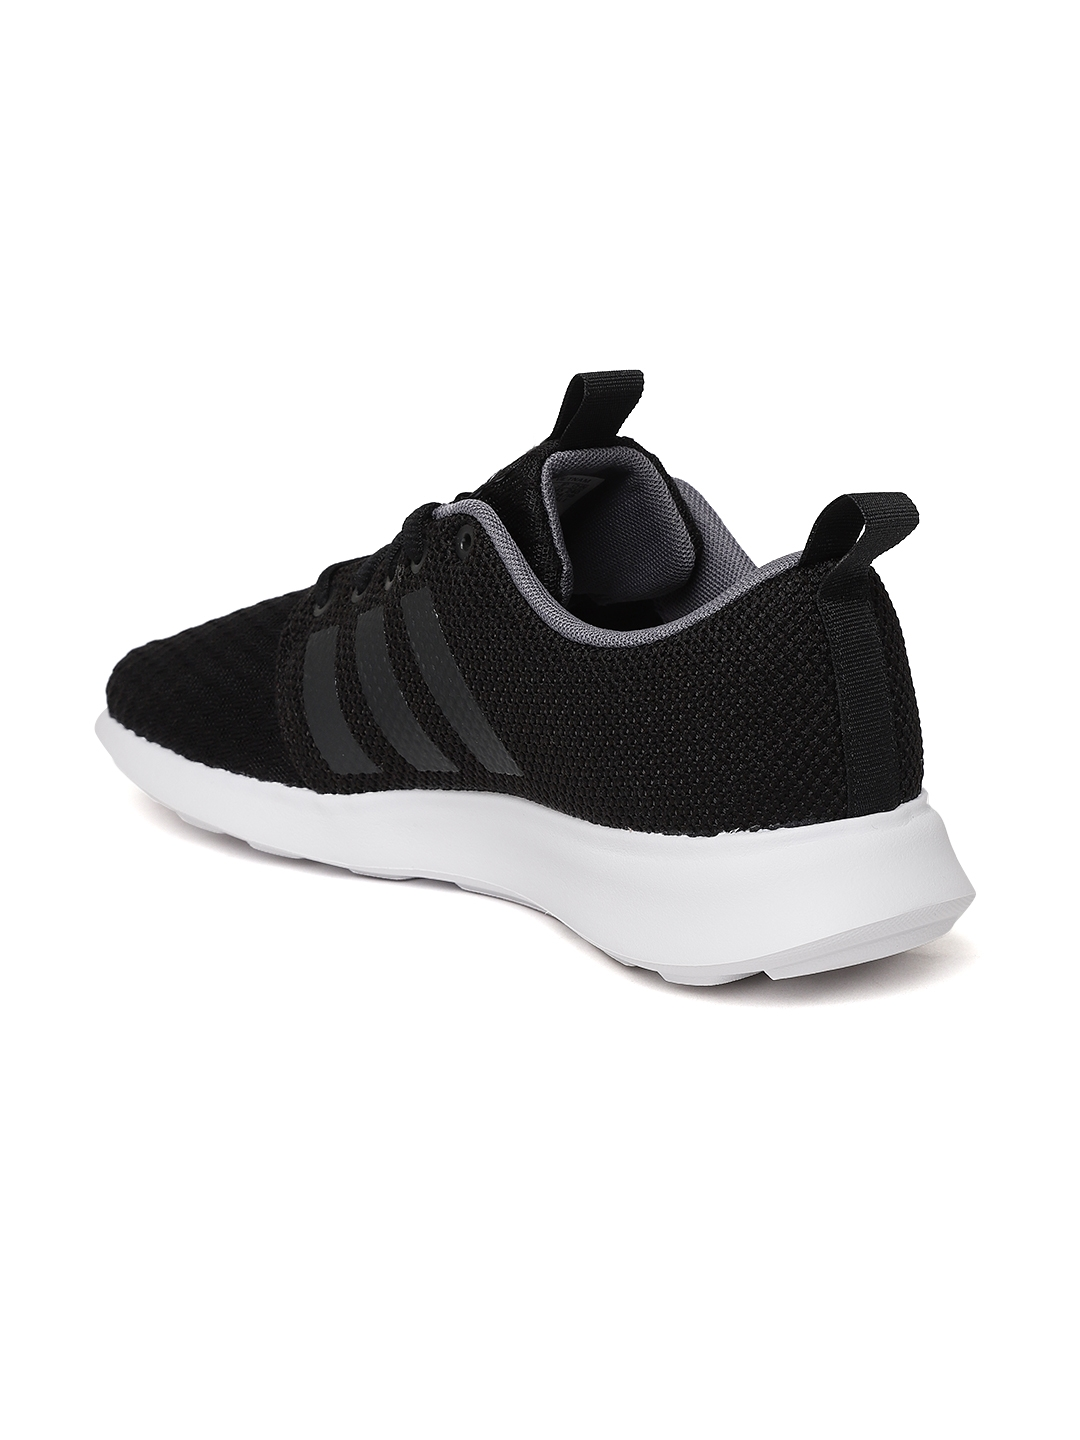 3c7b409c5 Buy Adidas Men Black Cloudfoam Swift Racer Running Shoes - Sports ...